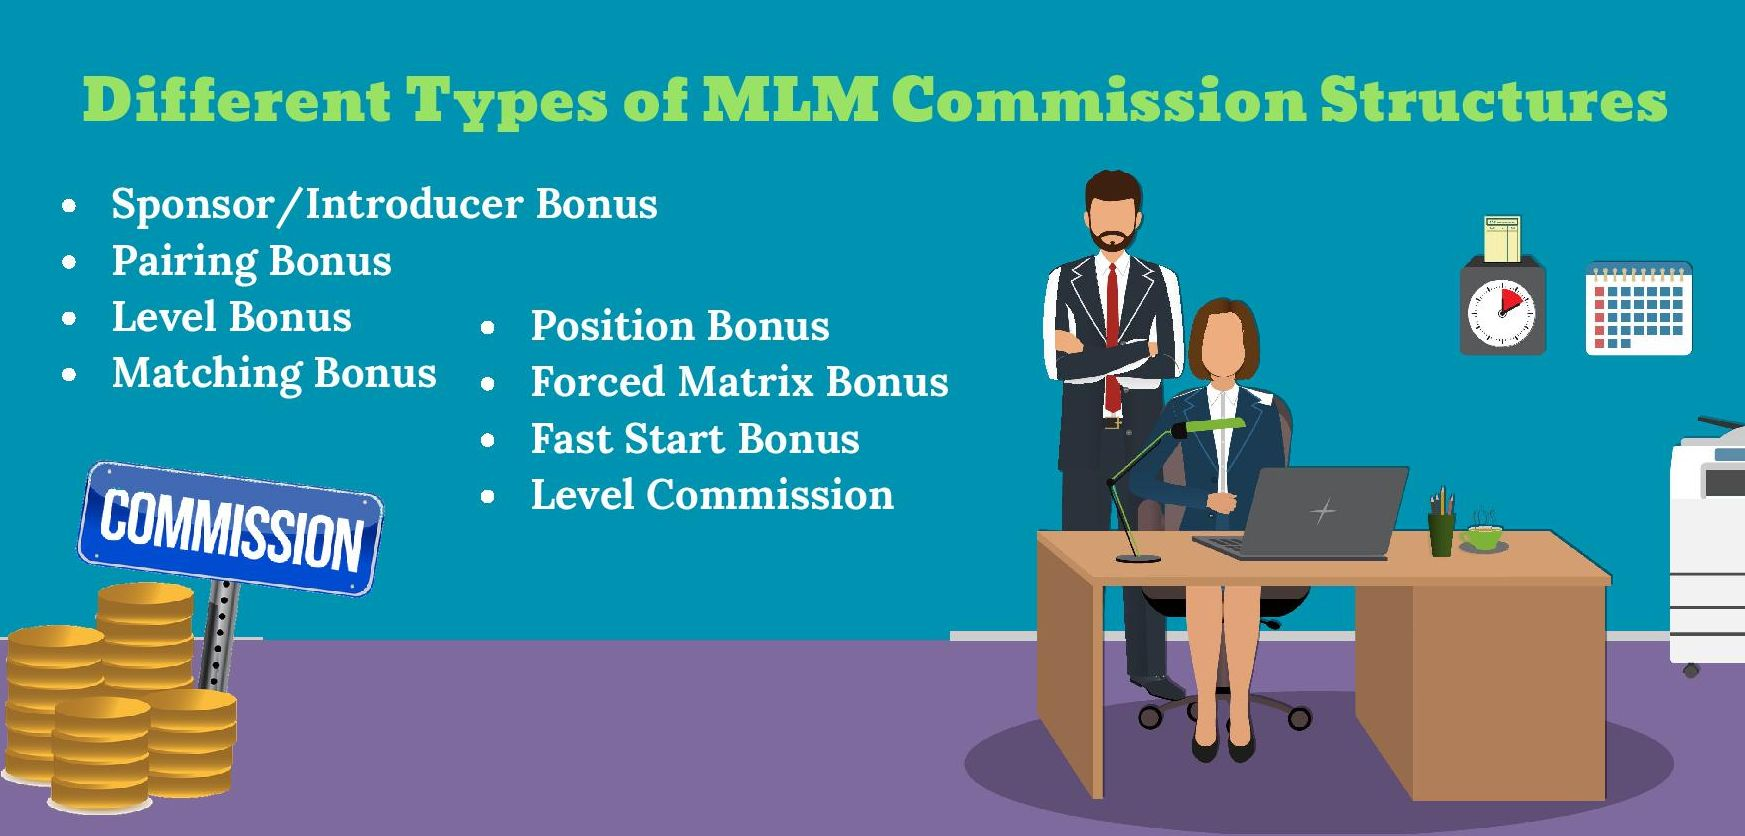 Types of MLM Commission Structures